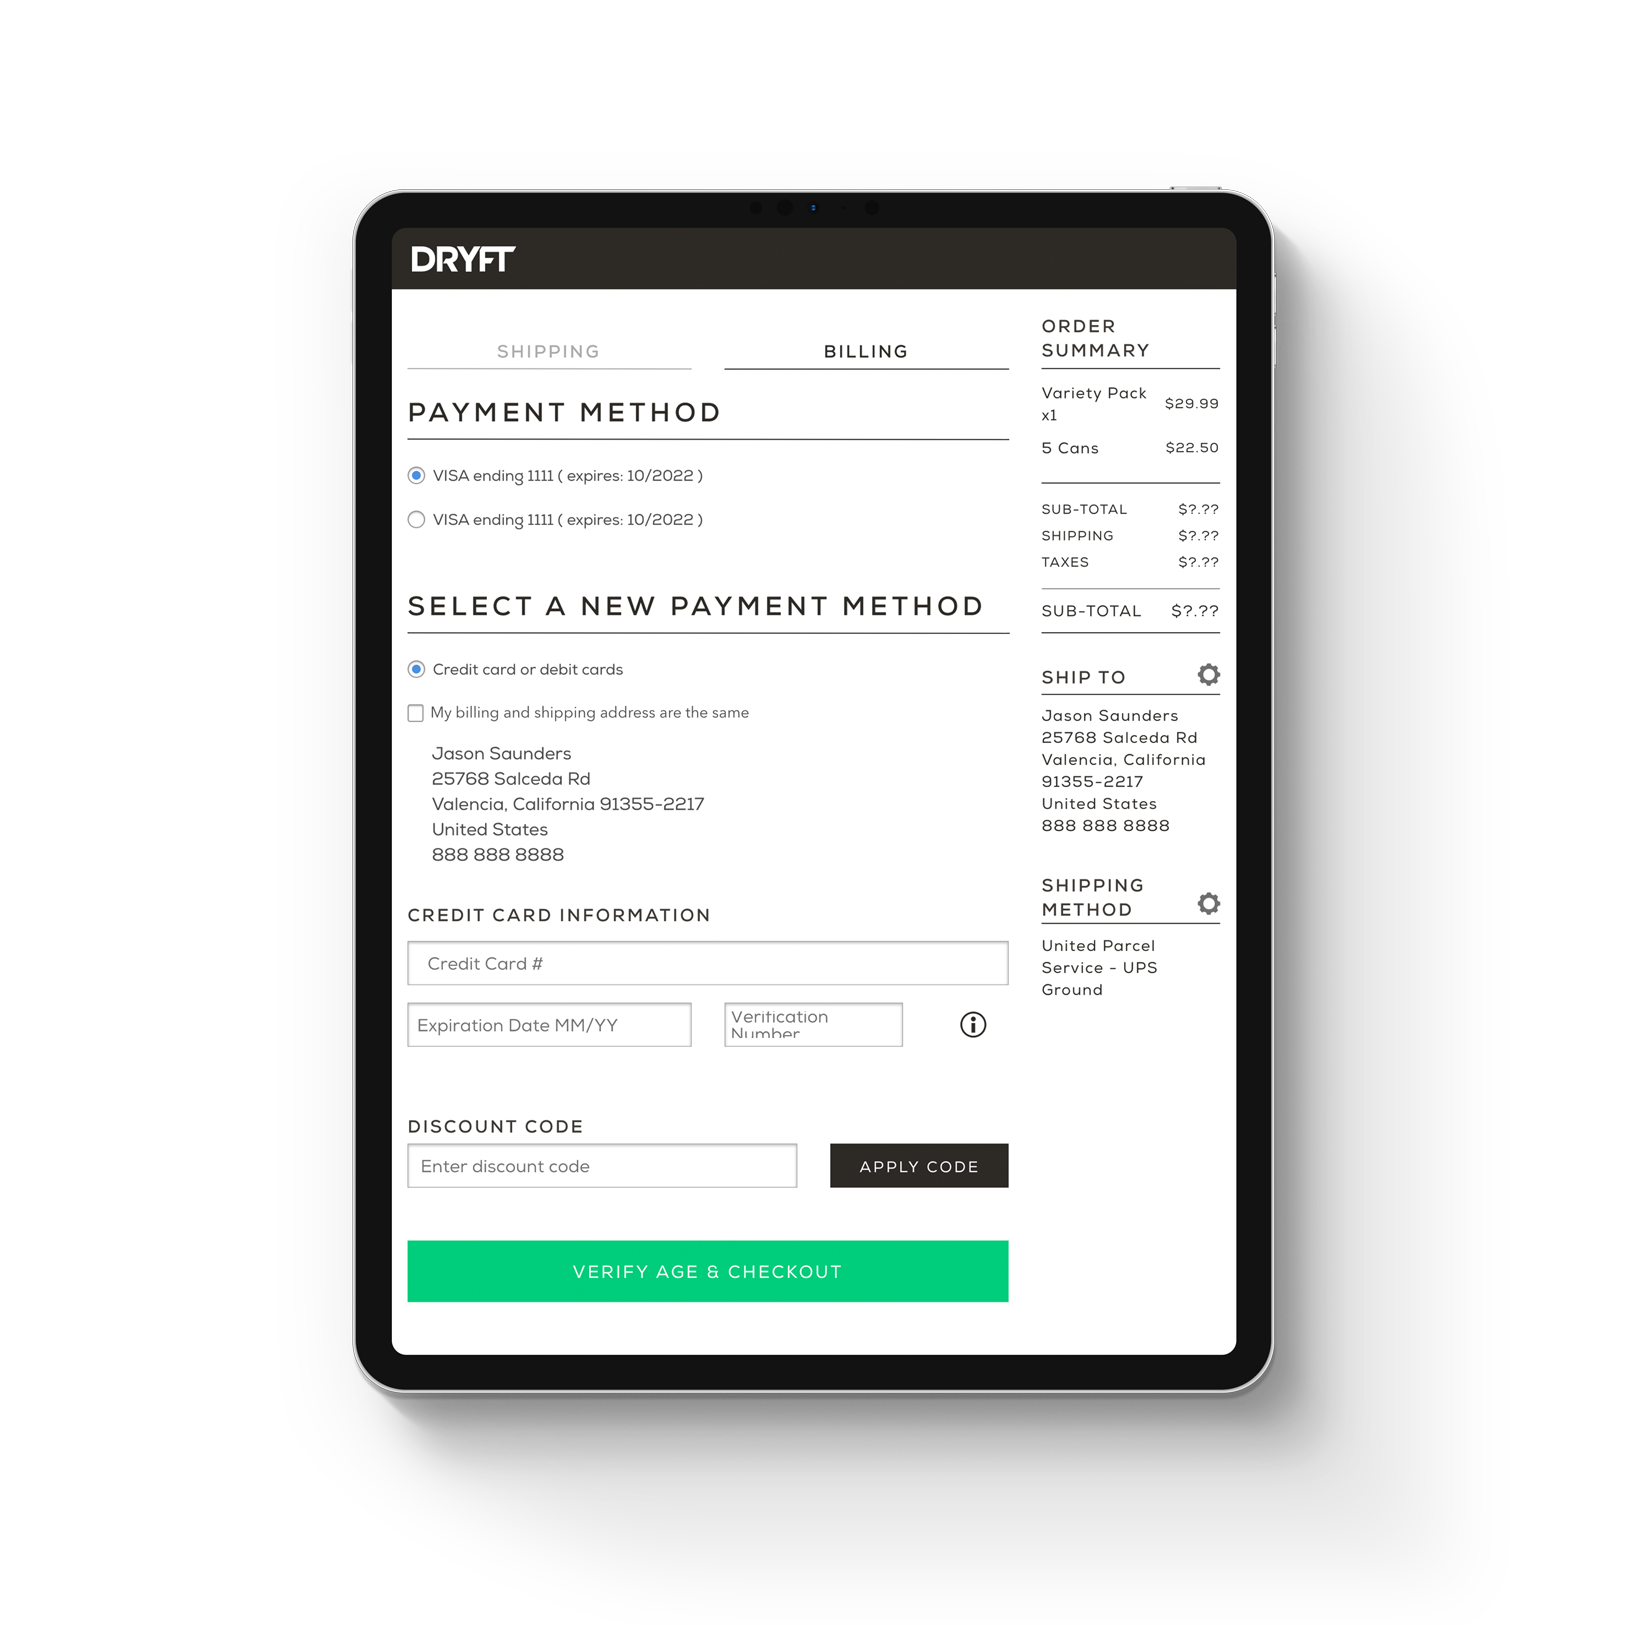 iPad tablet DRYFT payment billing page